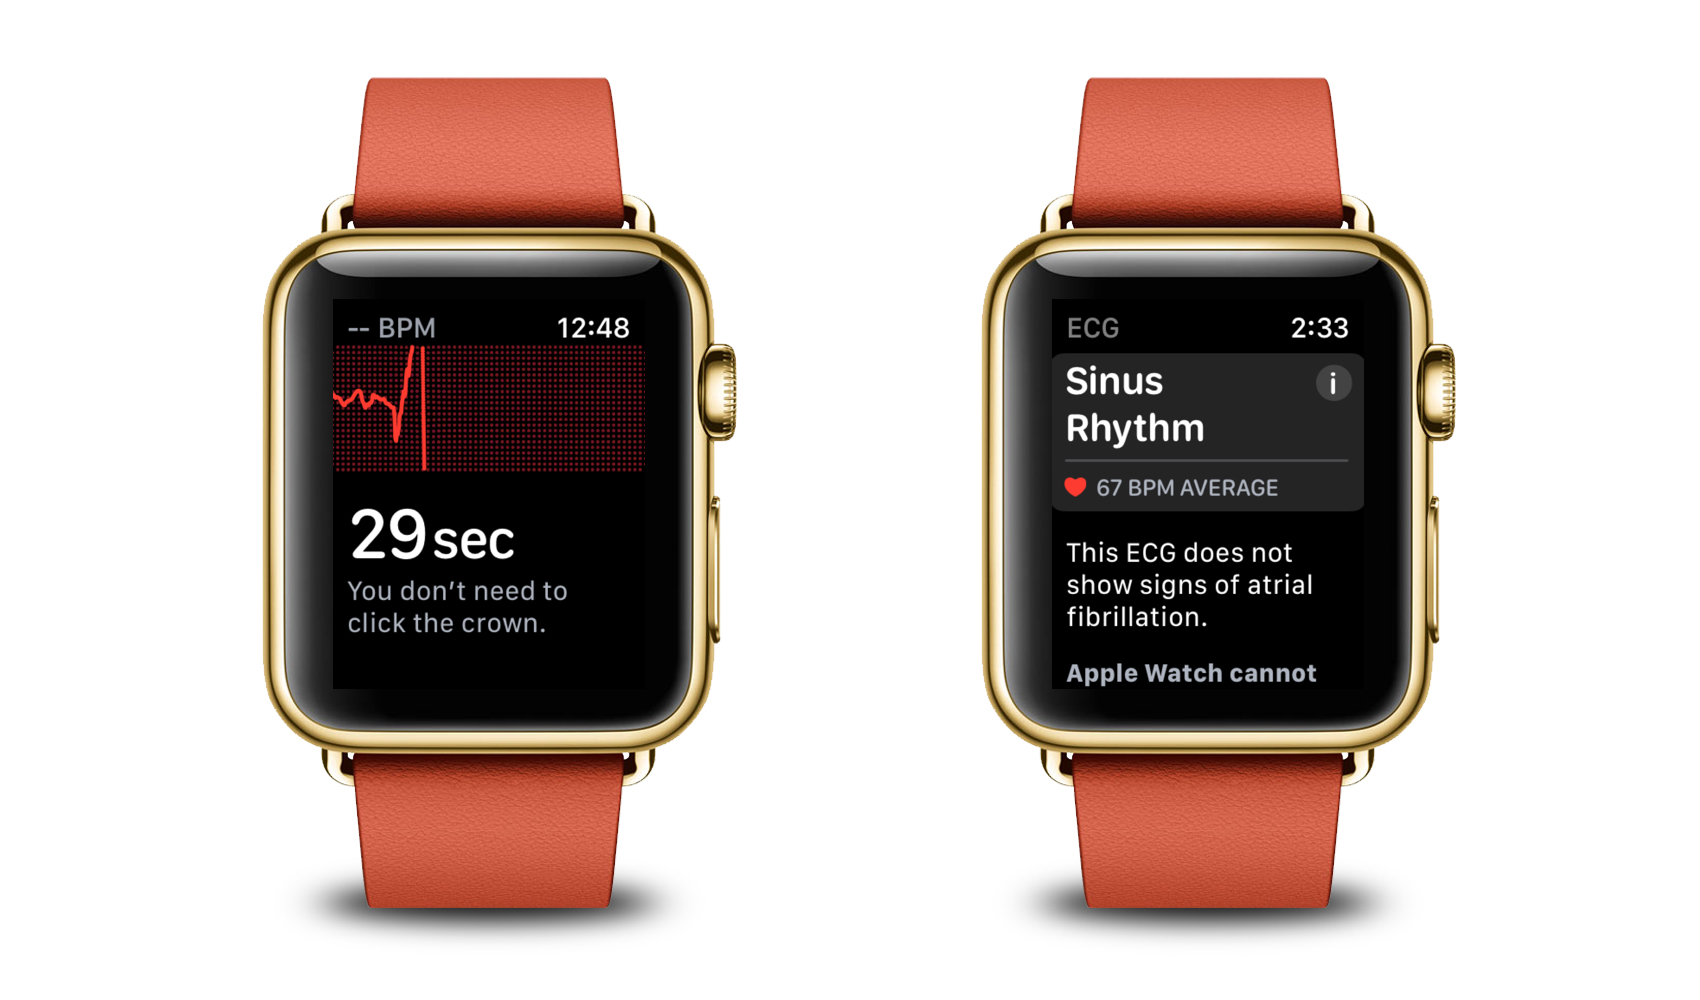 Tim Cook Shares Another Story of How Apple Watch Detected Another User's Afib Issues